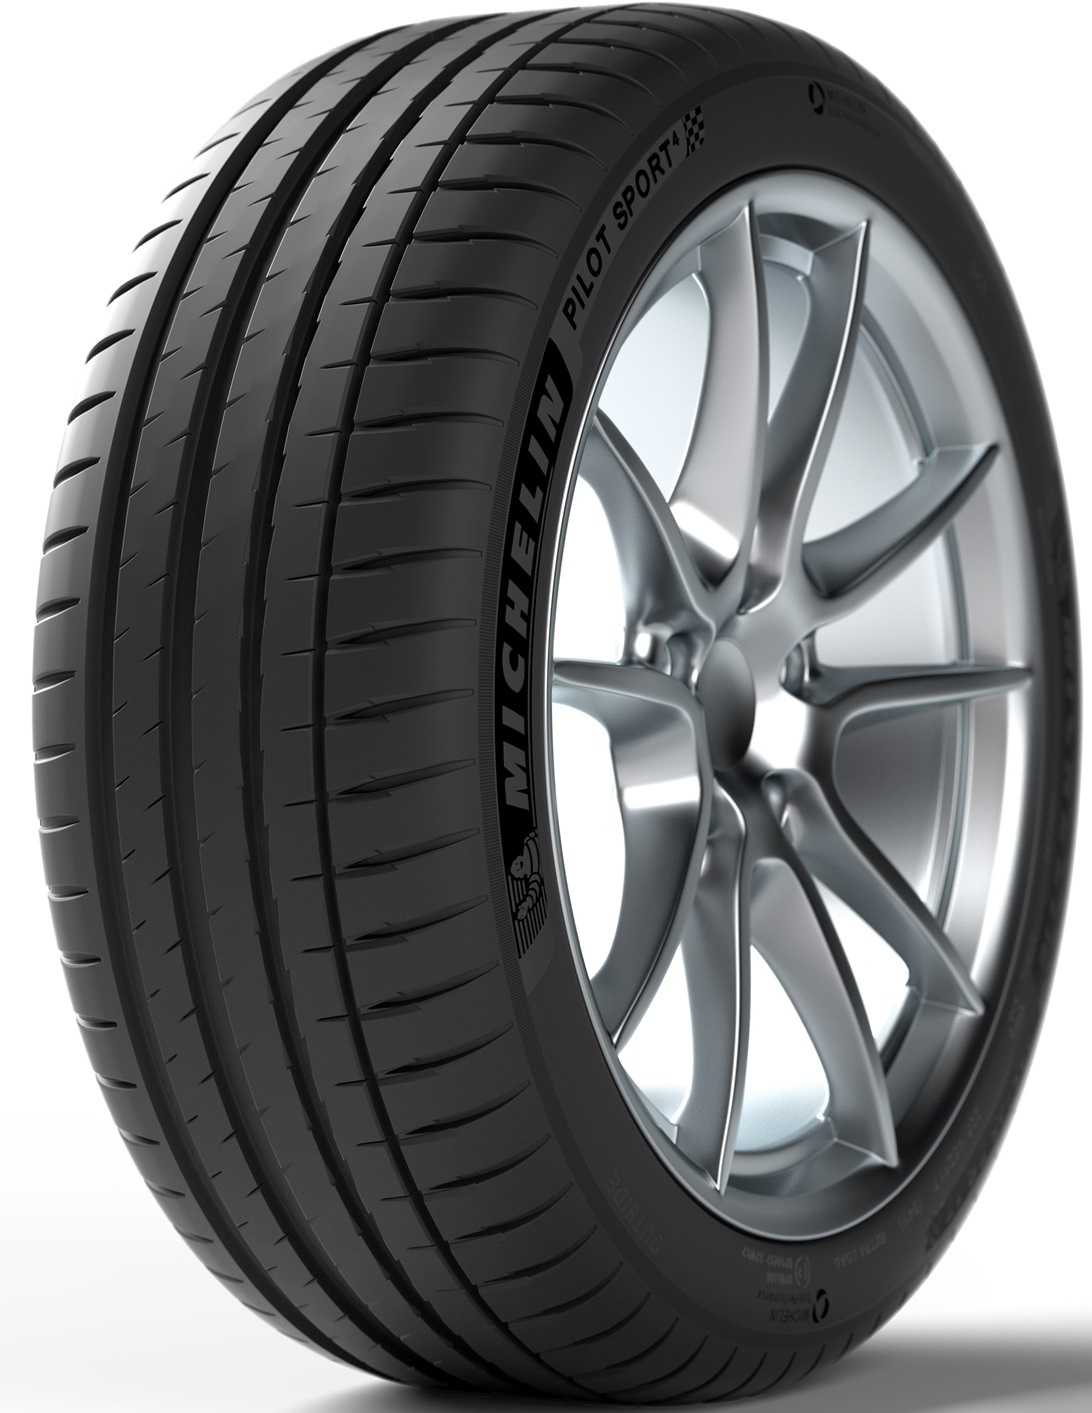 Michelin Pilot Sport 4 275/35 ZR19 100Y XL